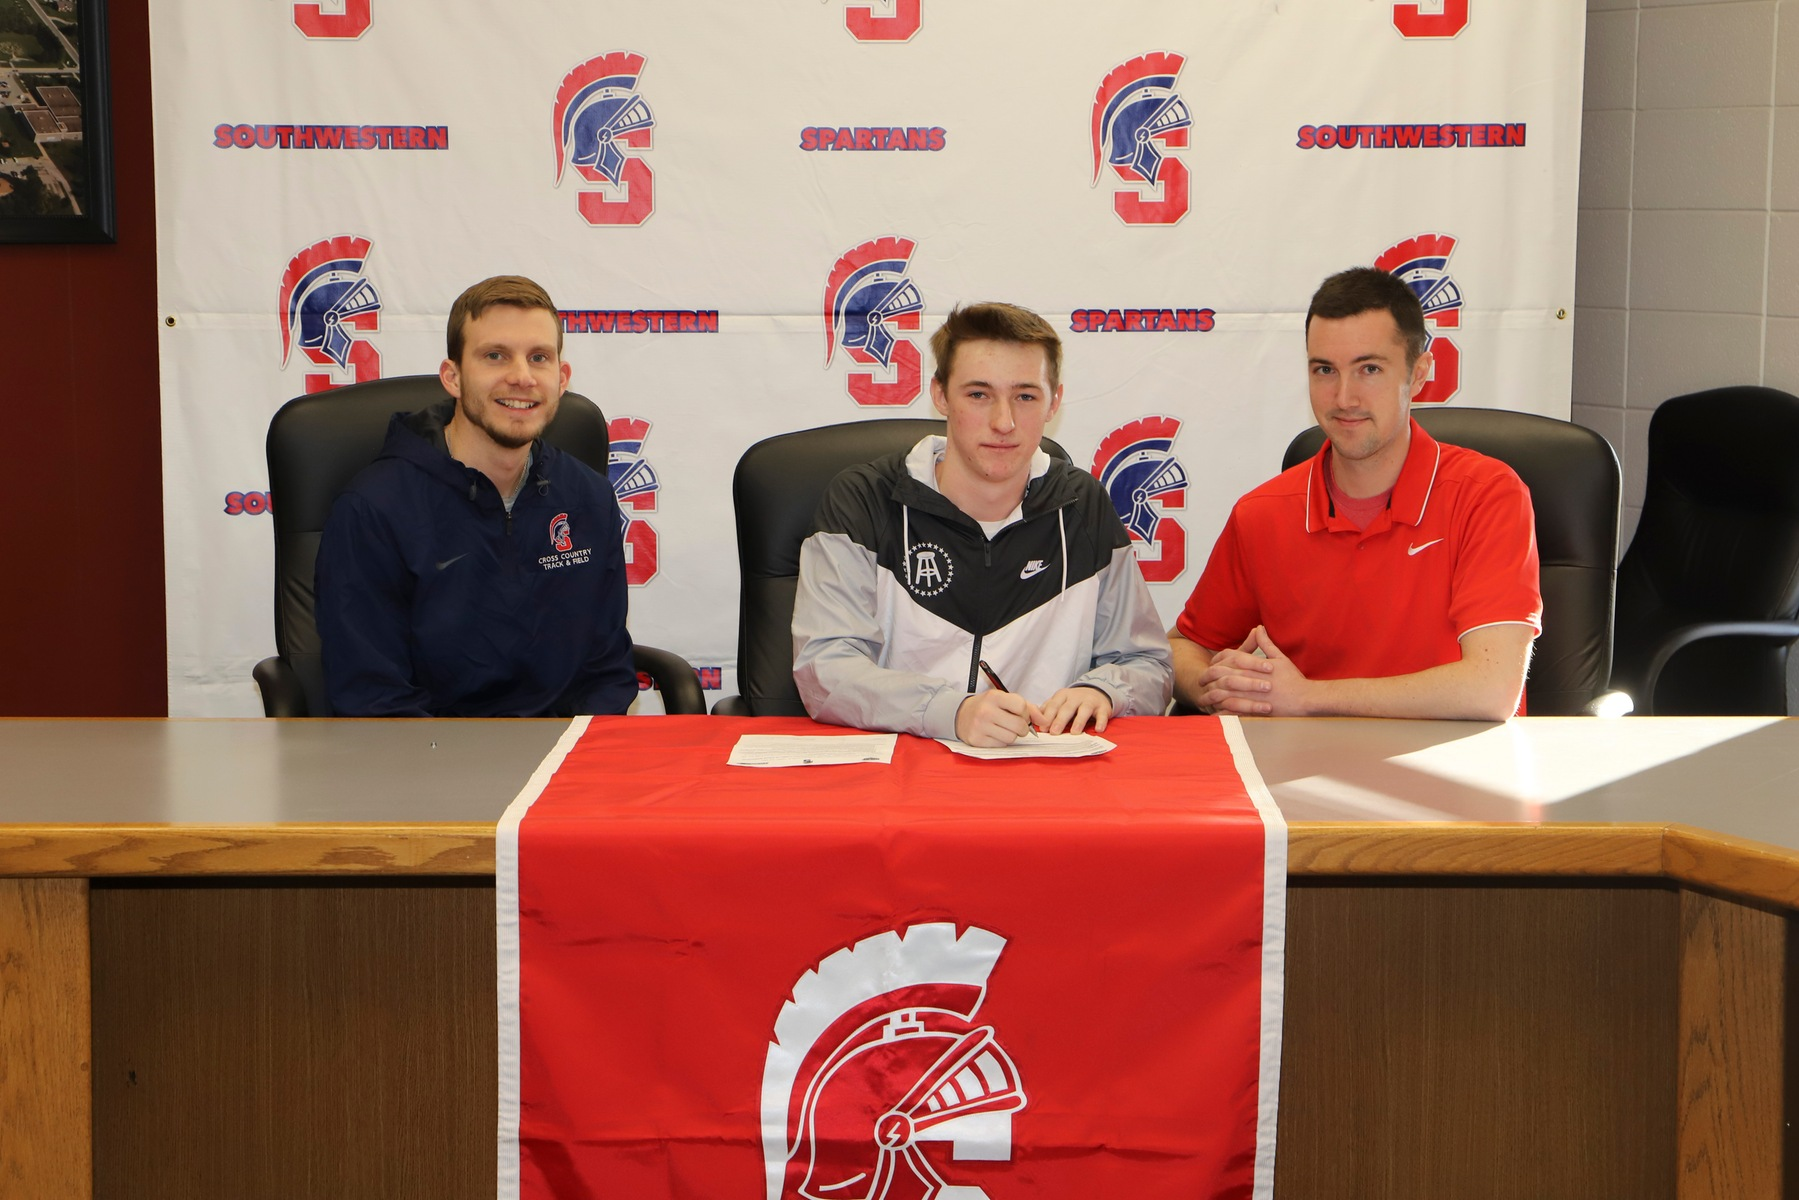 Central Decatur's Kolten Johnson signs his letter of intent with Southwestern for the 2019-20 track and field season.